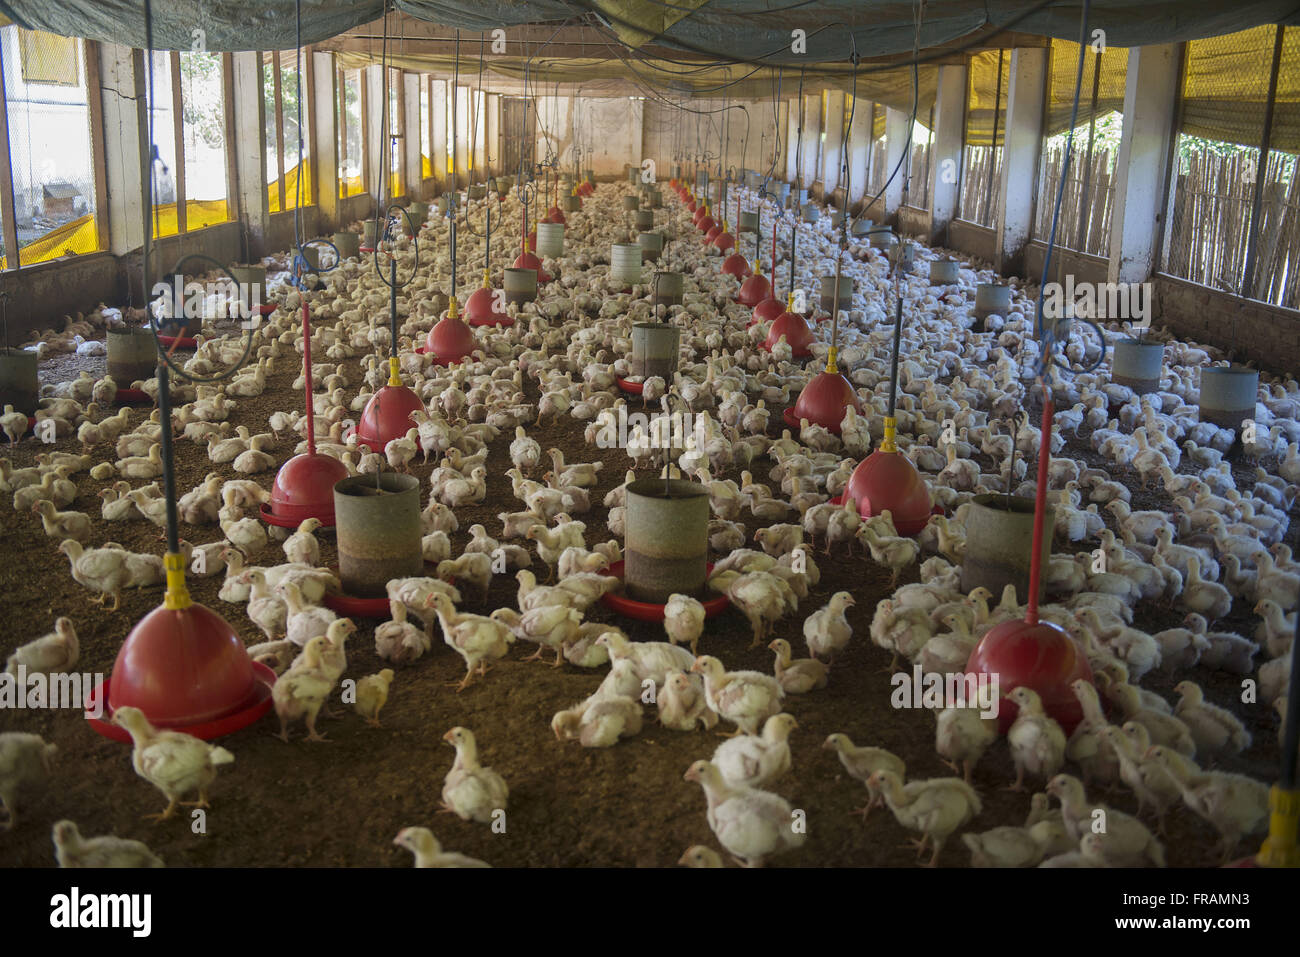 Creation of chickens for slaughter - Stock Image